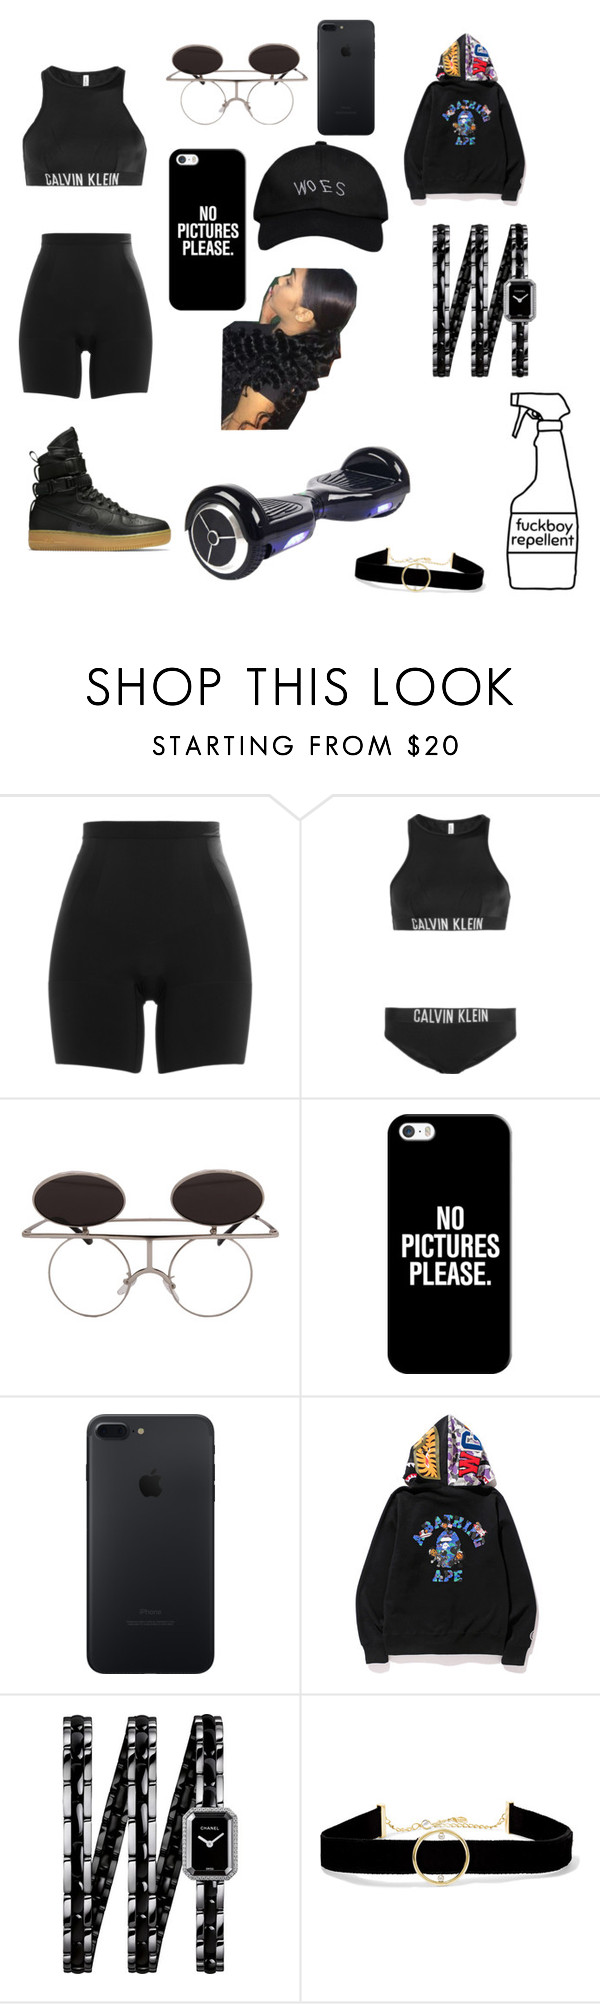 """Selfie Repellent 🤒"" by trendsetterkiki ❤ liked on Polyvore featuring SPANX, Calvin Klein, NIKE, Casetify, A BATHING APE, Chanel and Anissa Kermiche"